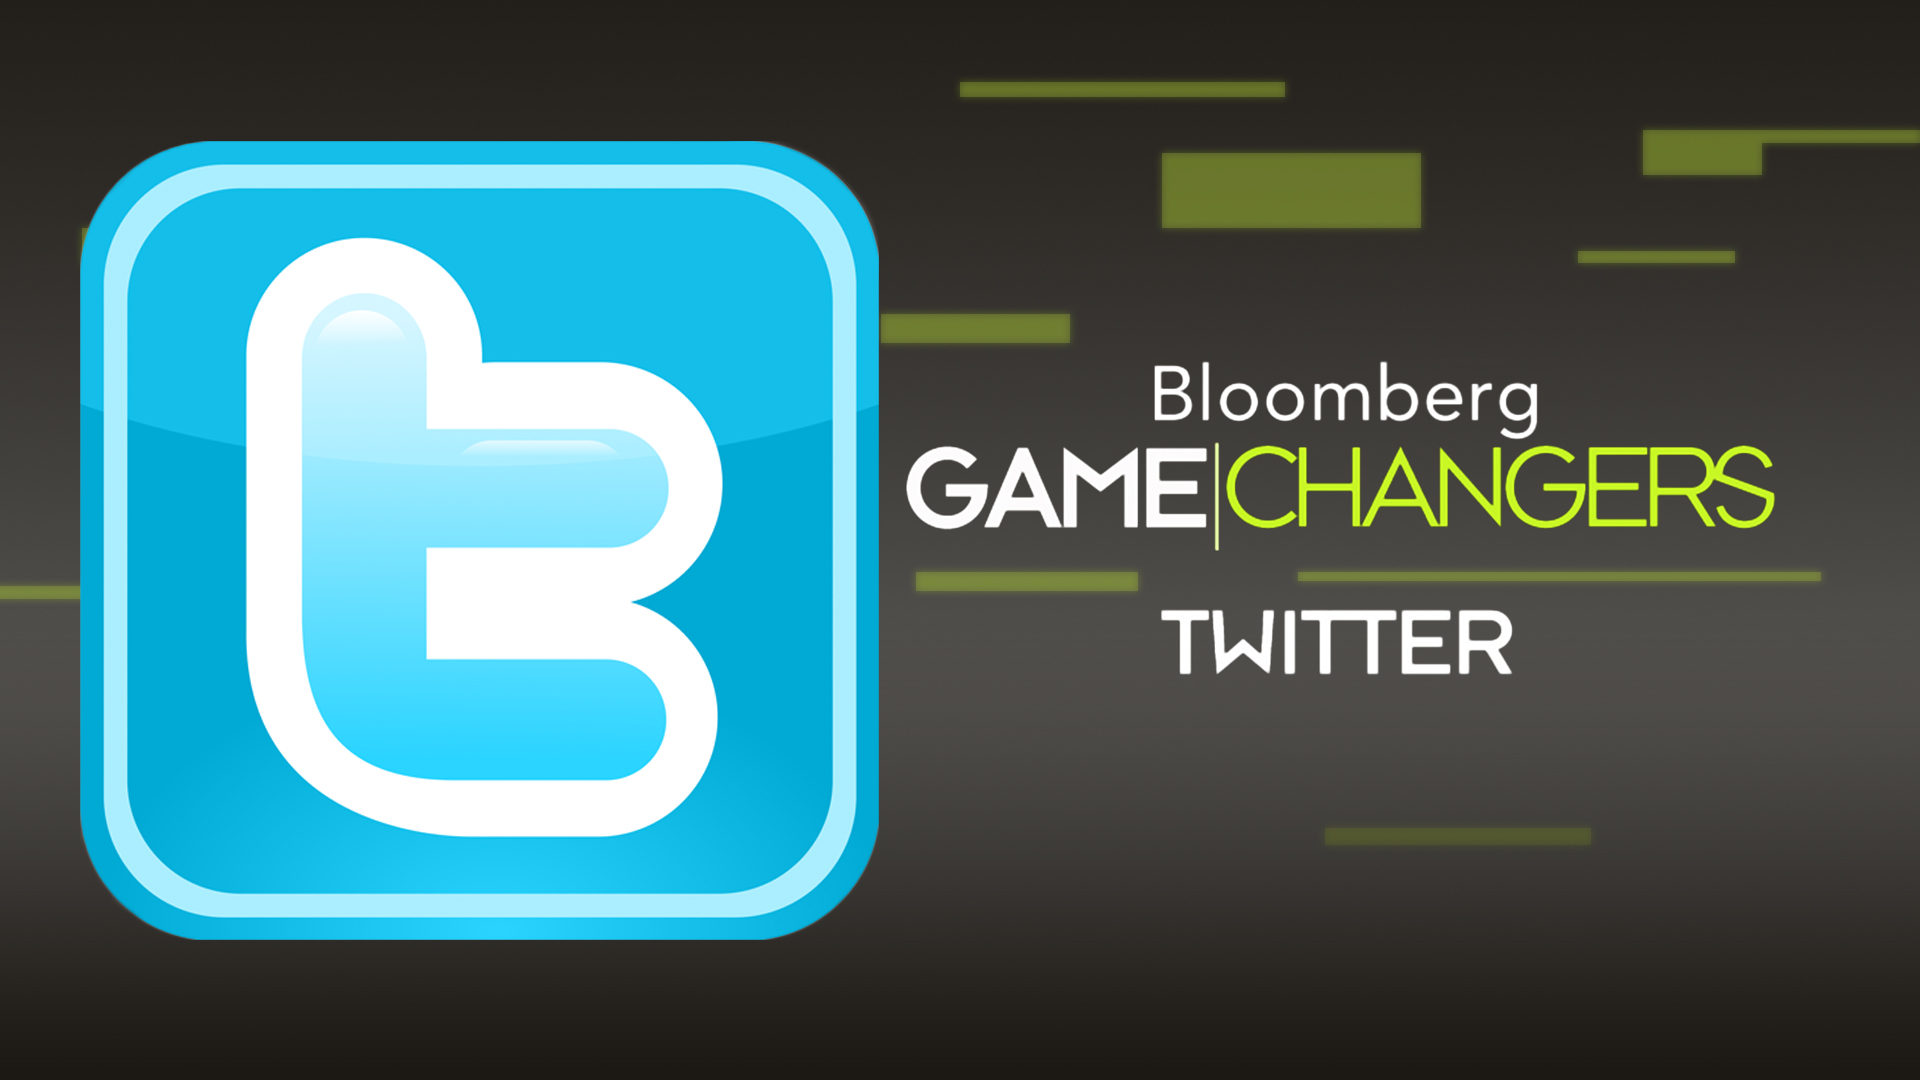 Bloomberg Game Changers: Twitter